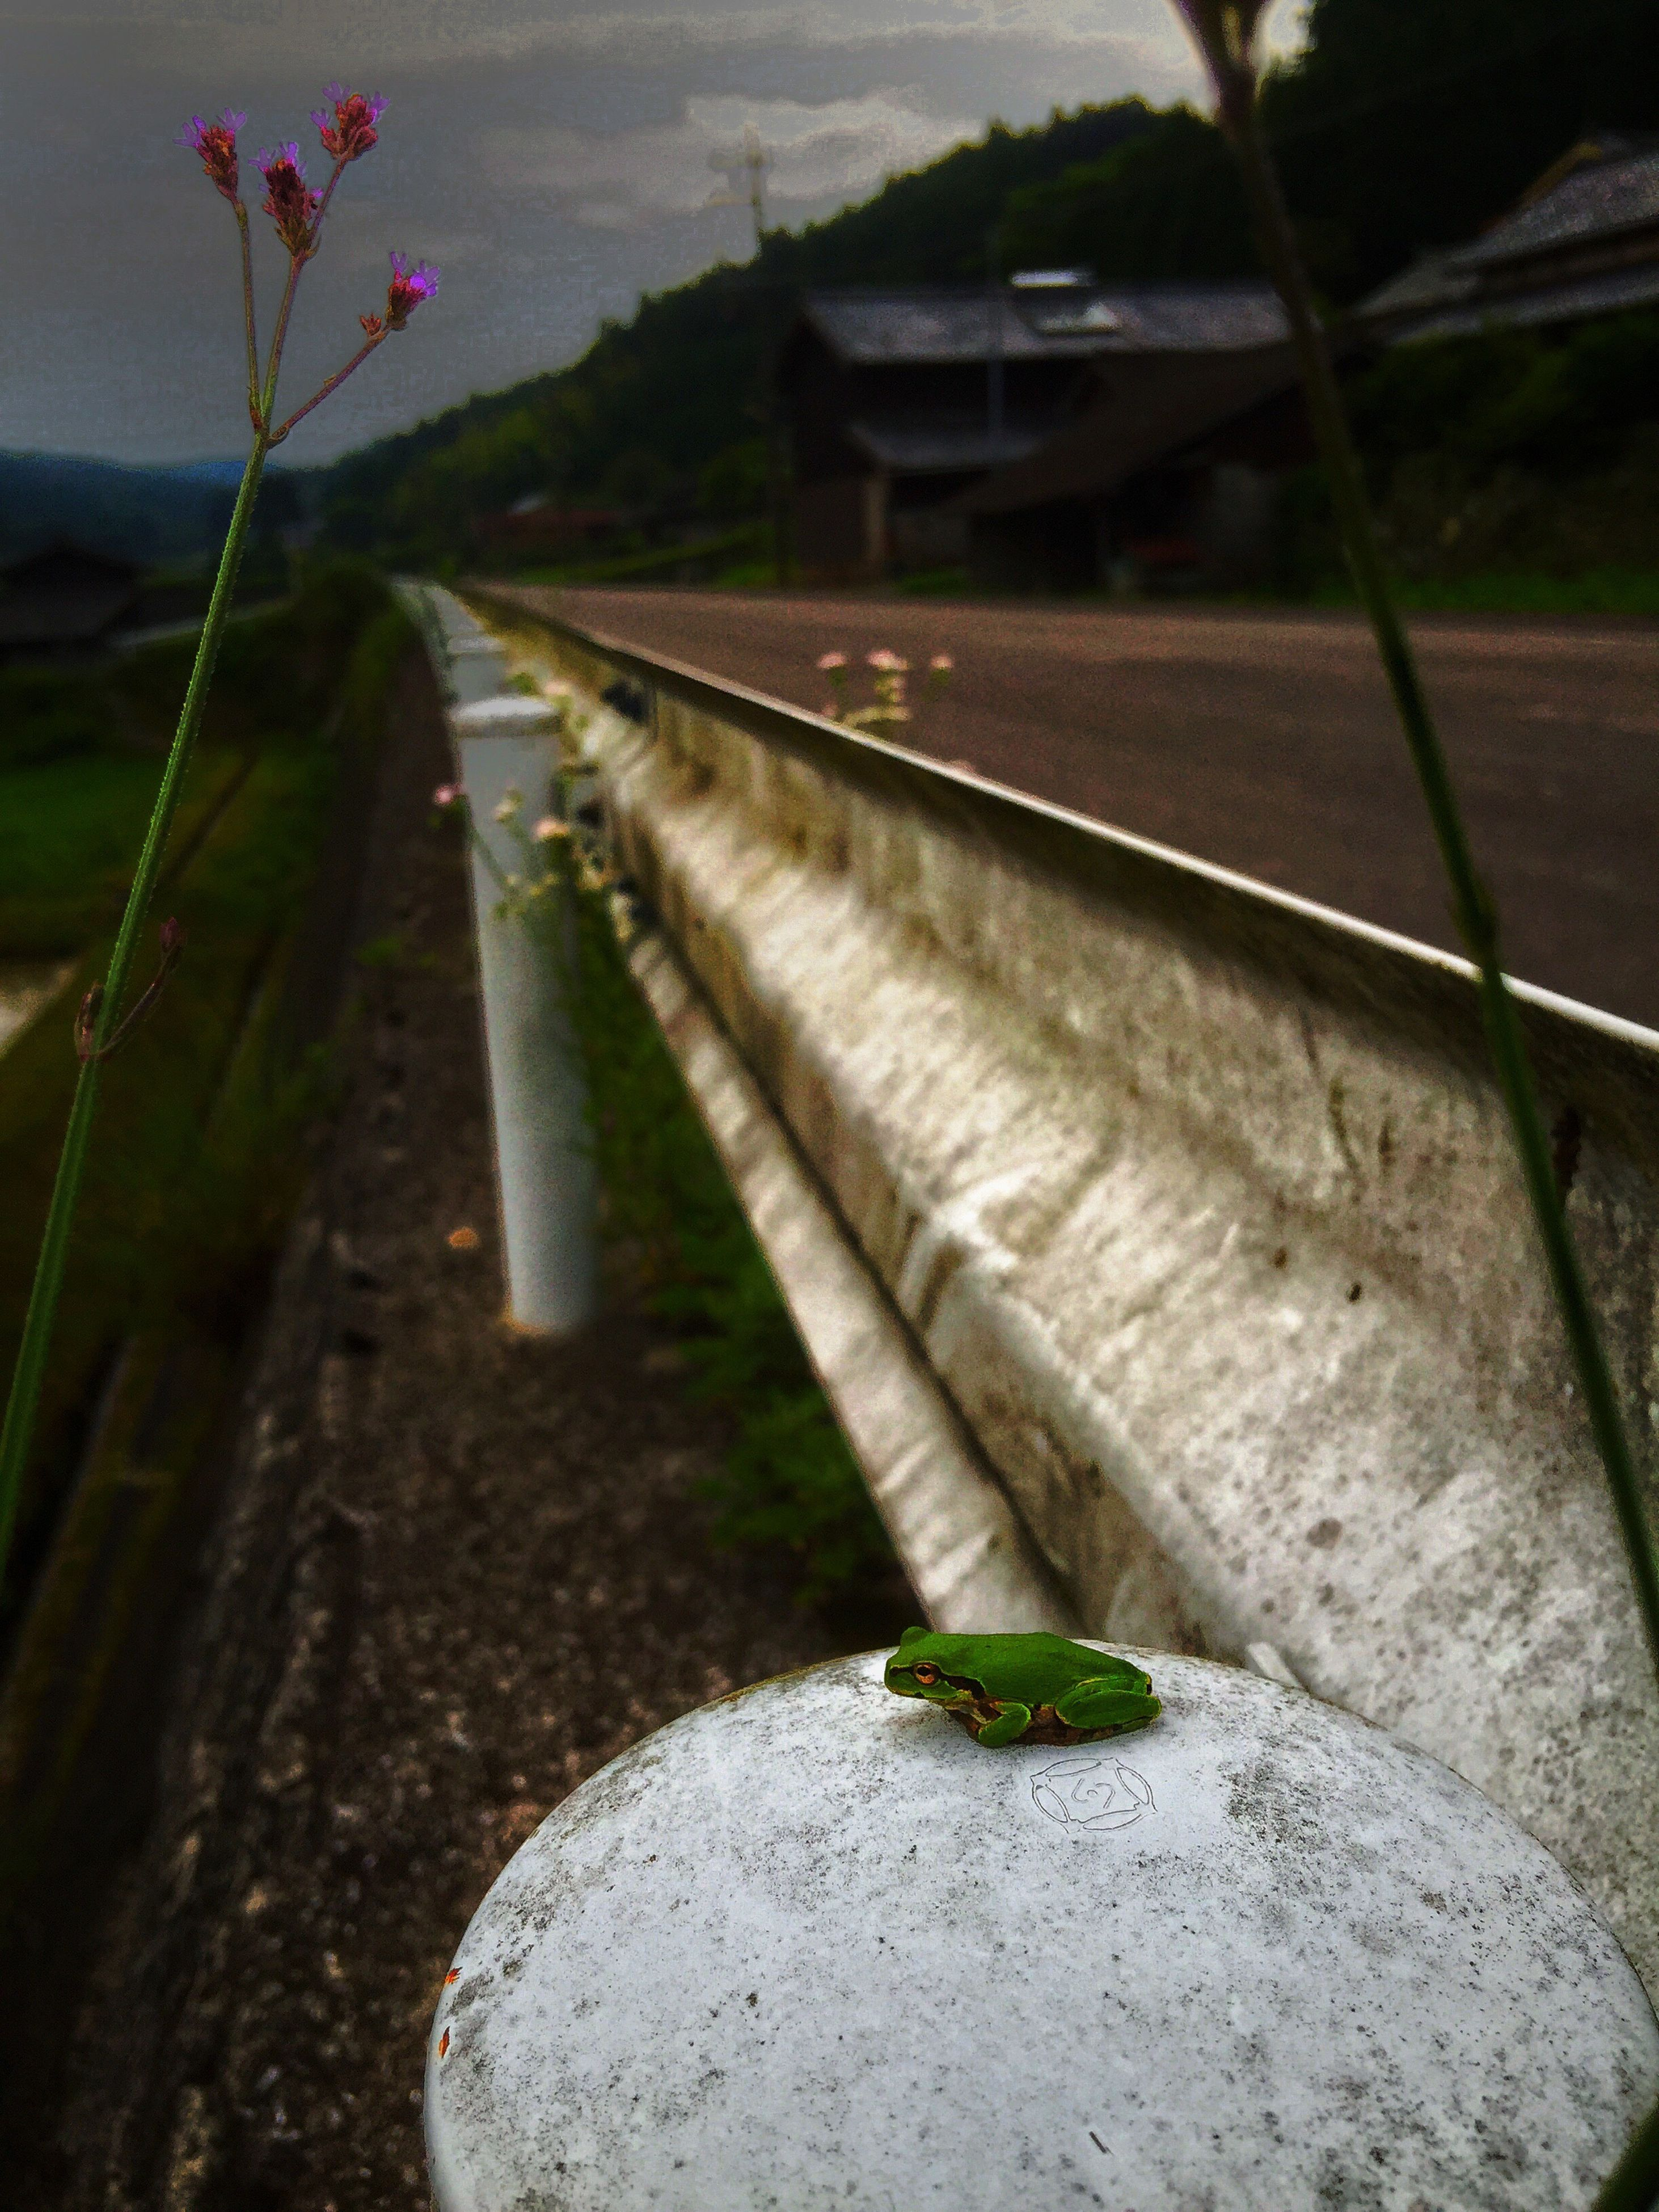 plant, high angle view, transportation, growth, railroad track, outdoors, nature, road, no people, day, street, leaf, selective focus, rock - object, close-up, green color, stone - object, focus on foreground, the way forward, built structure